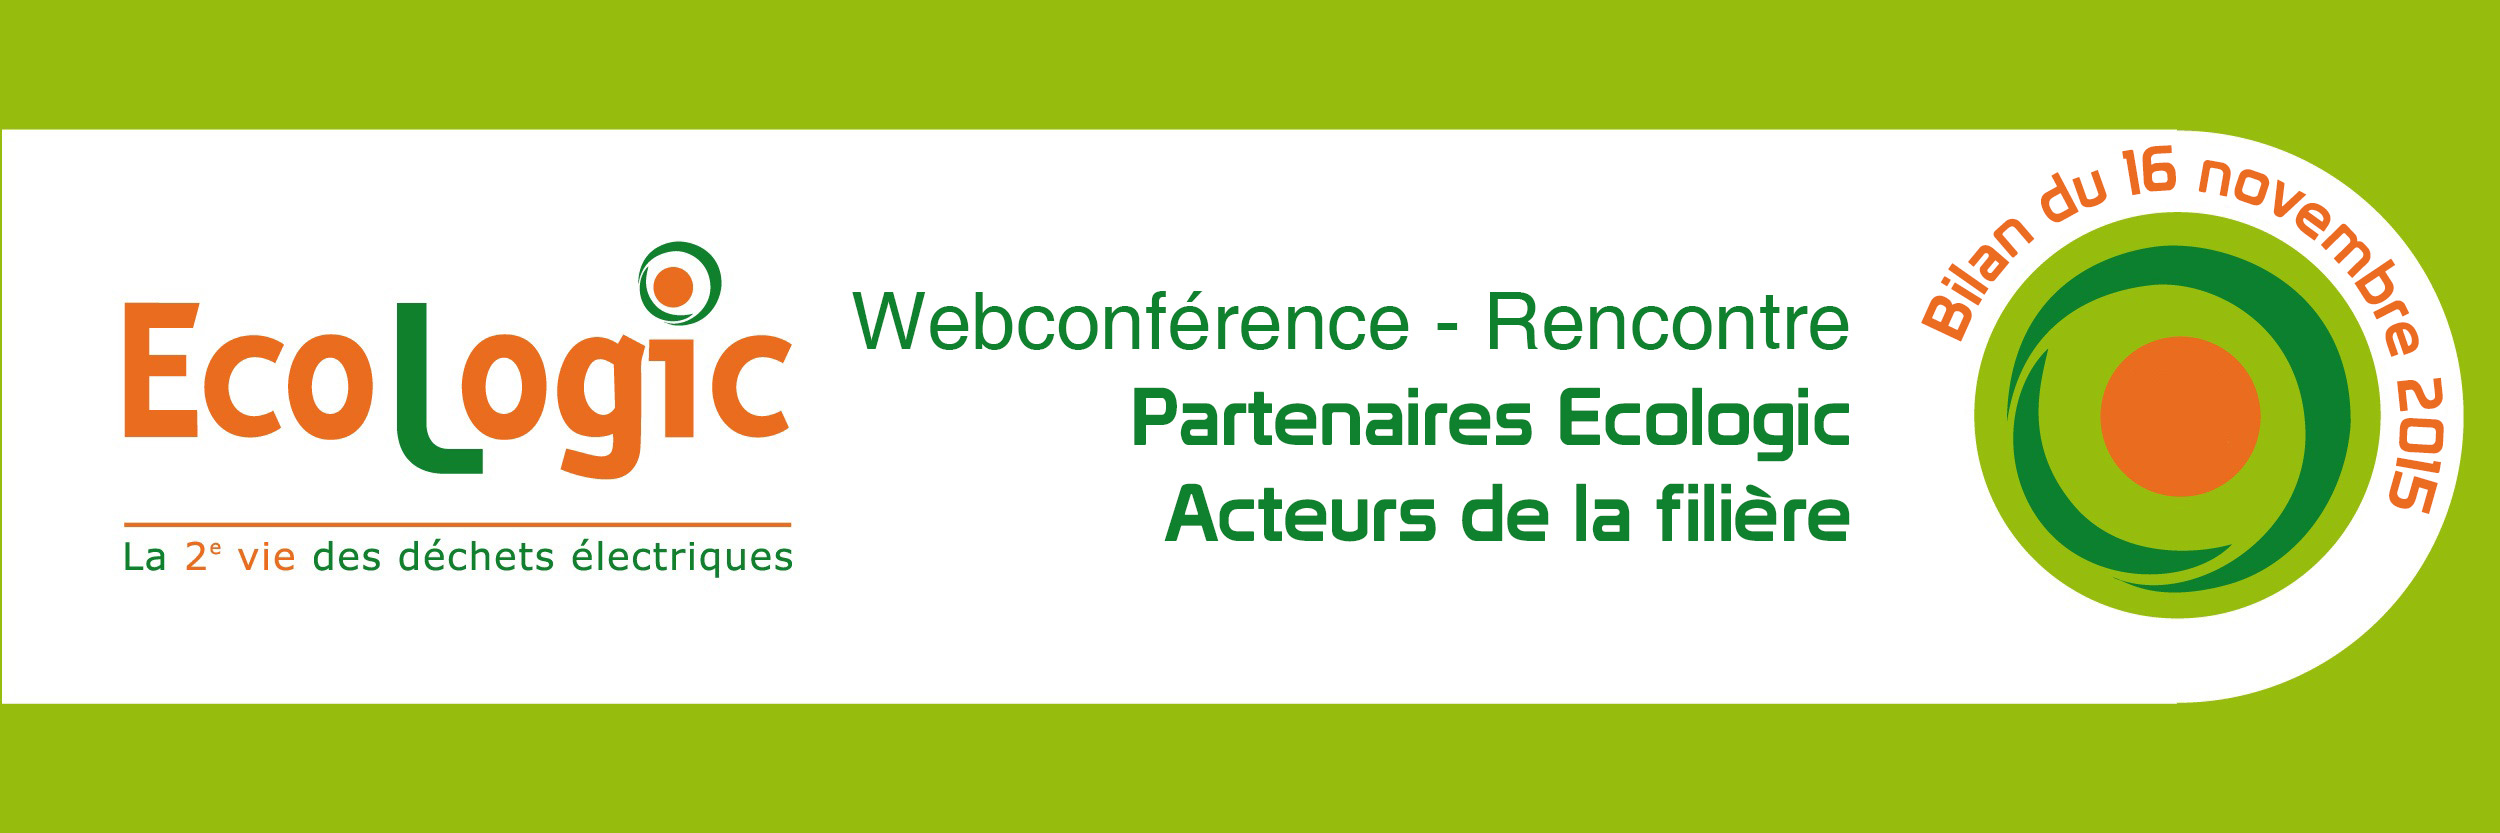 newsletter rencontre